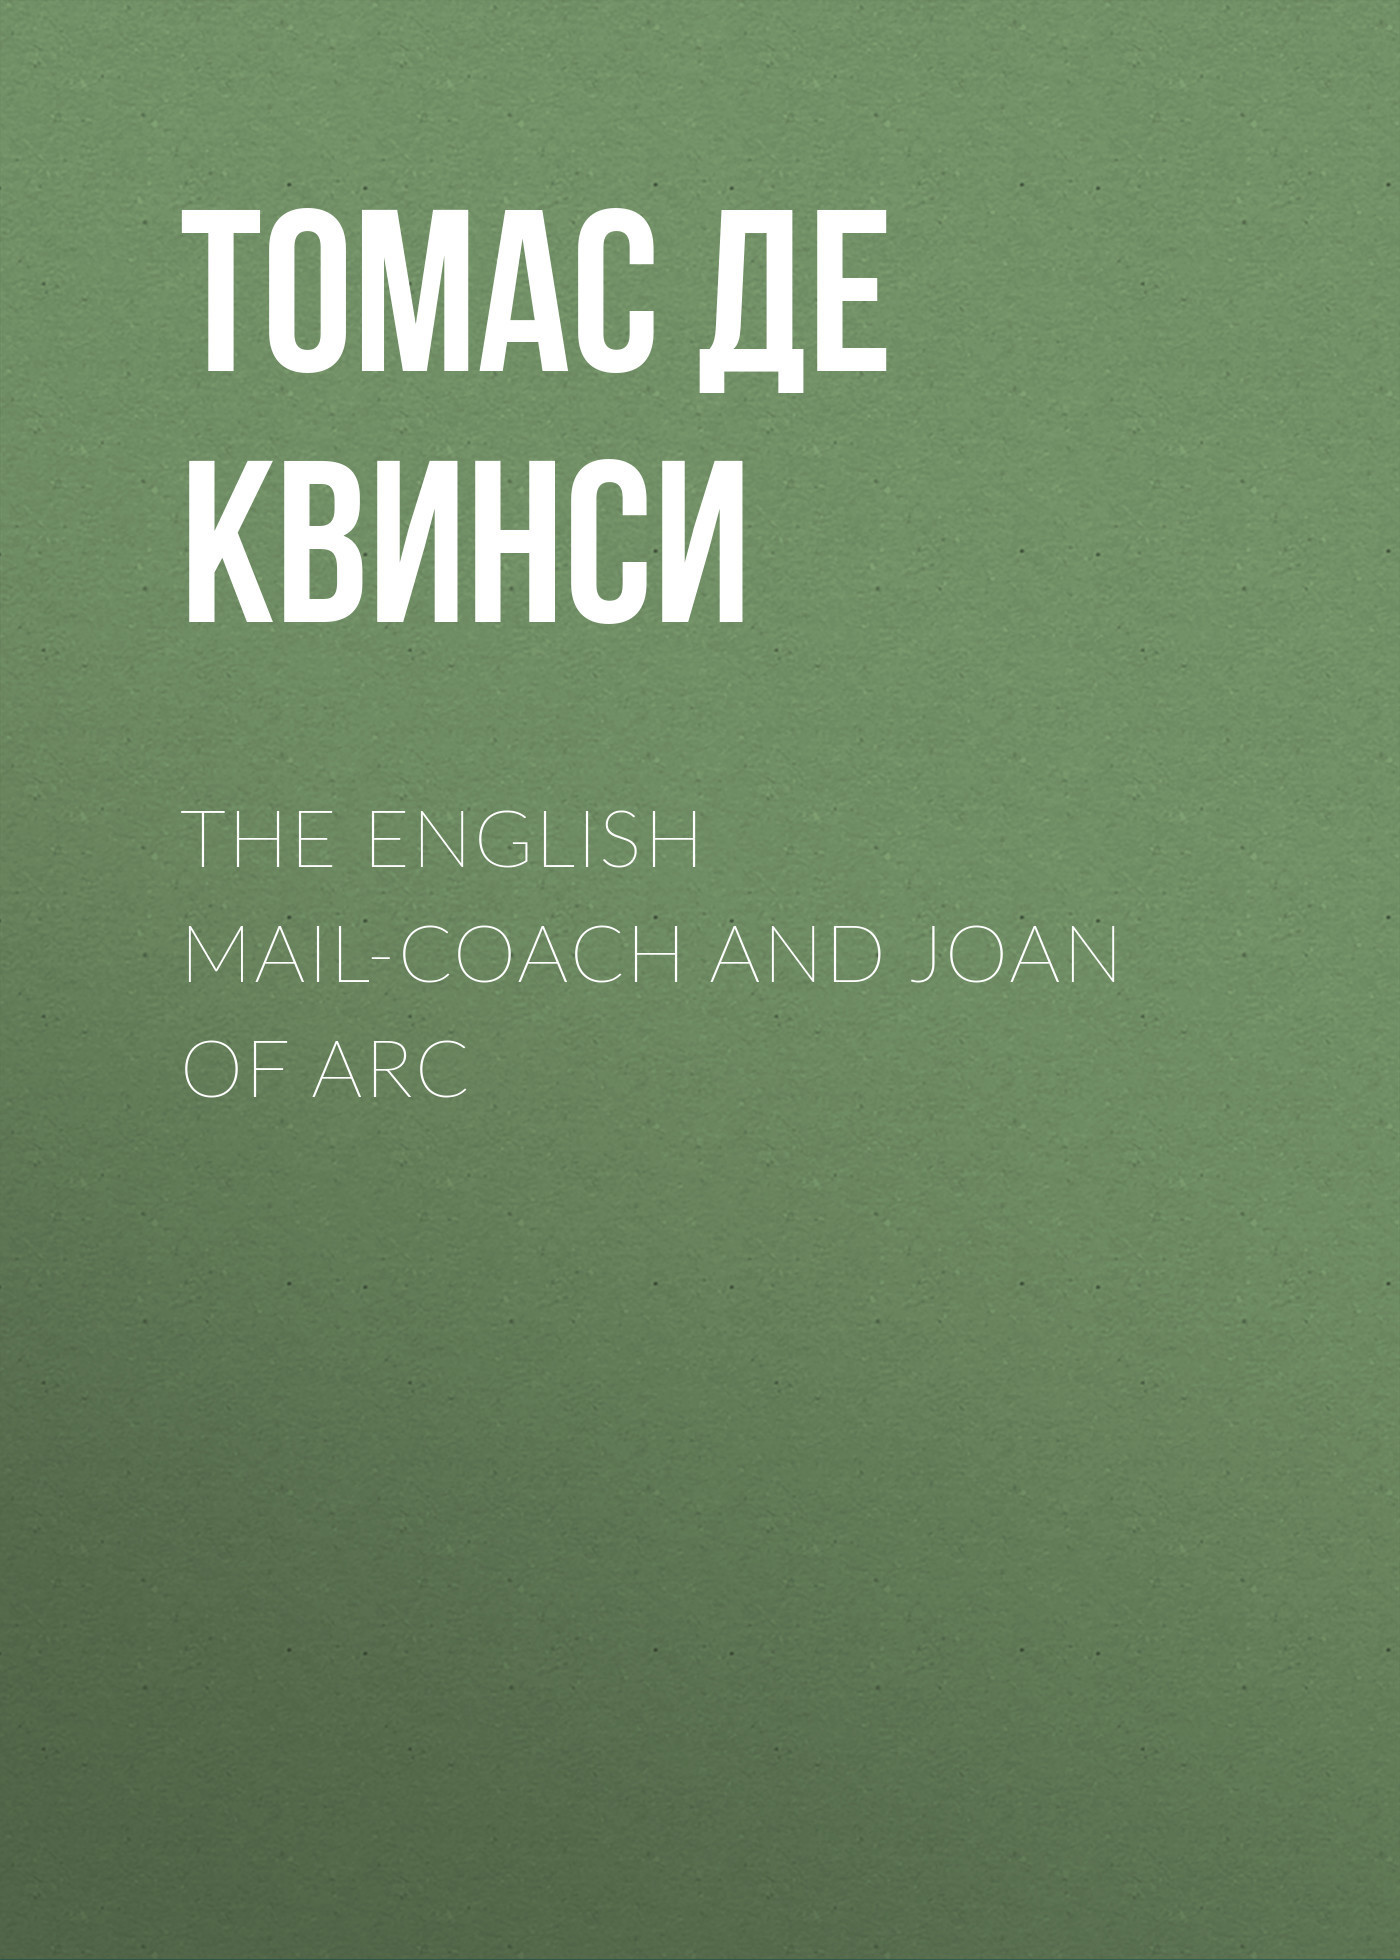 Томас де Квинси The English Mail-Coach and Joan of Arc the destruction of tilted arc – documents